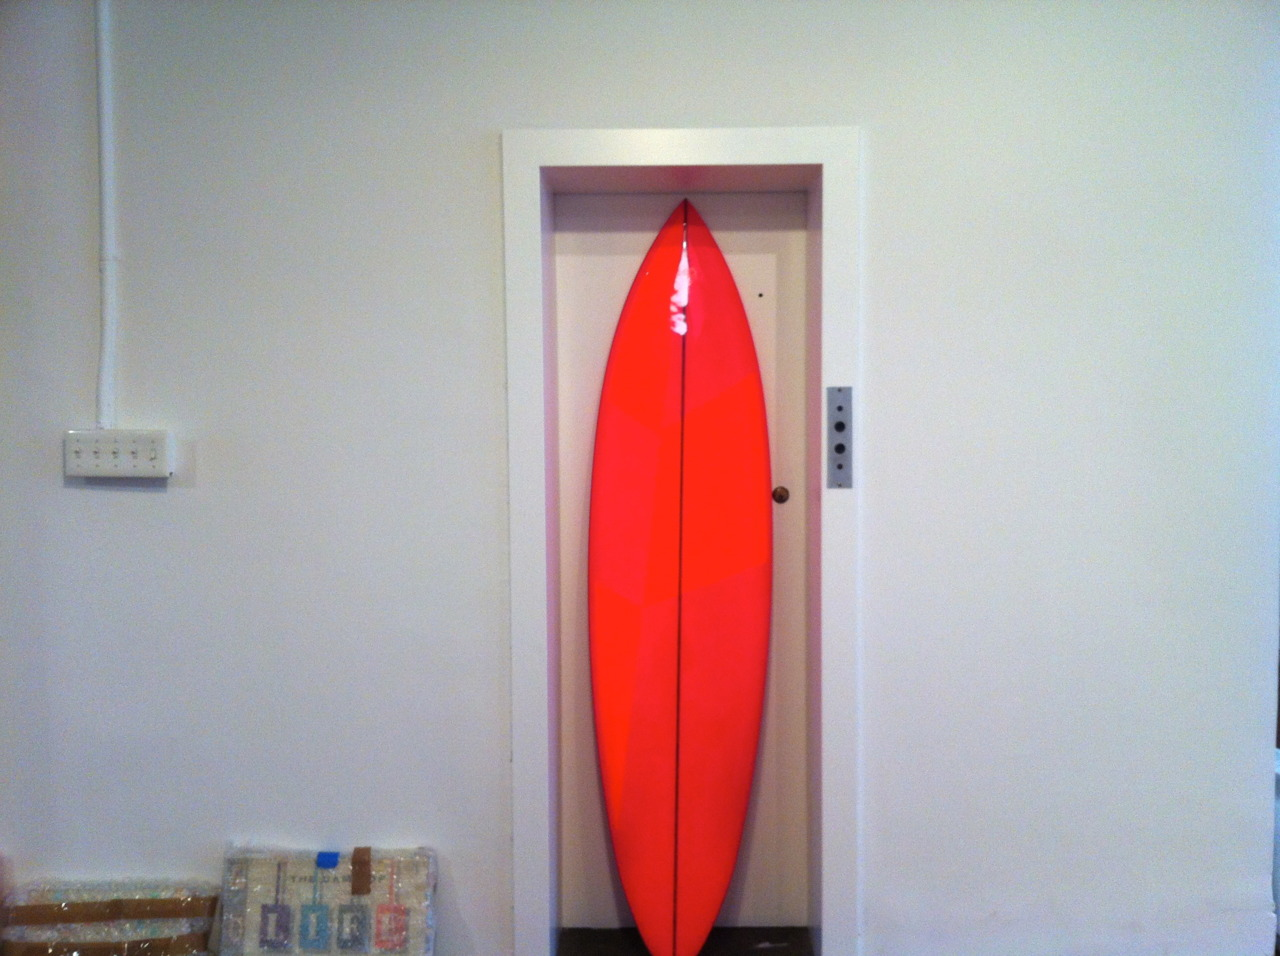 JUST FOUND THE PERFECT SPOT FOR ROGAN GREGORY'S  FLUORO BOARD